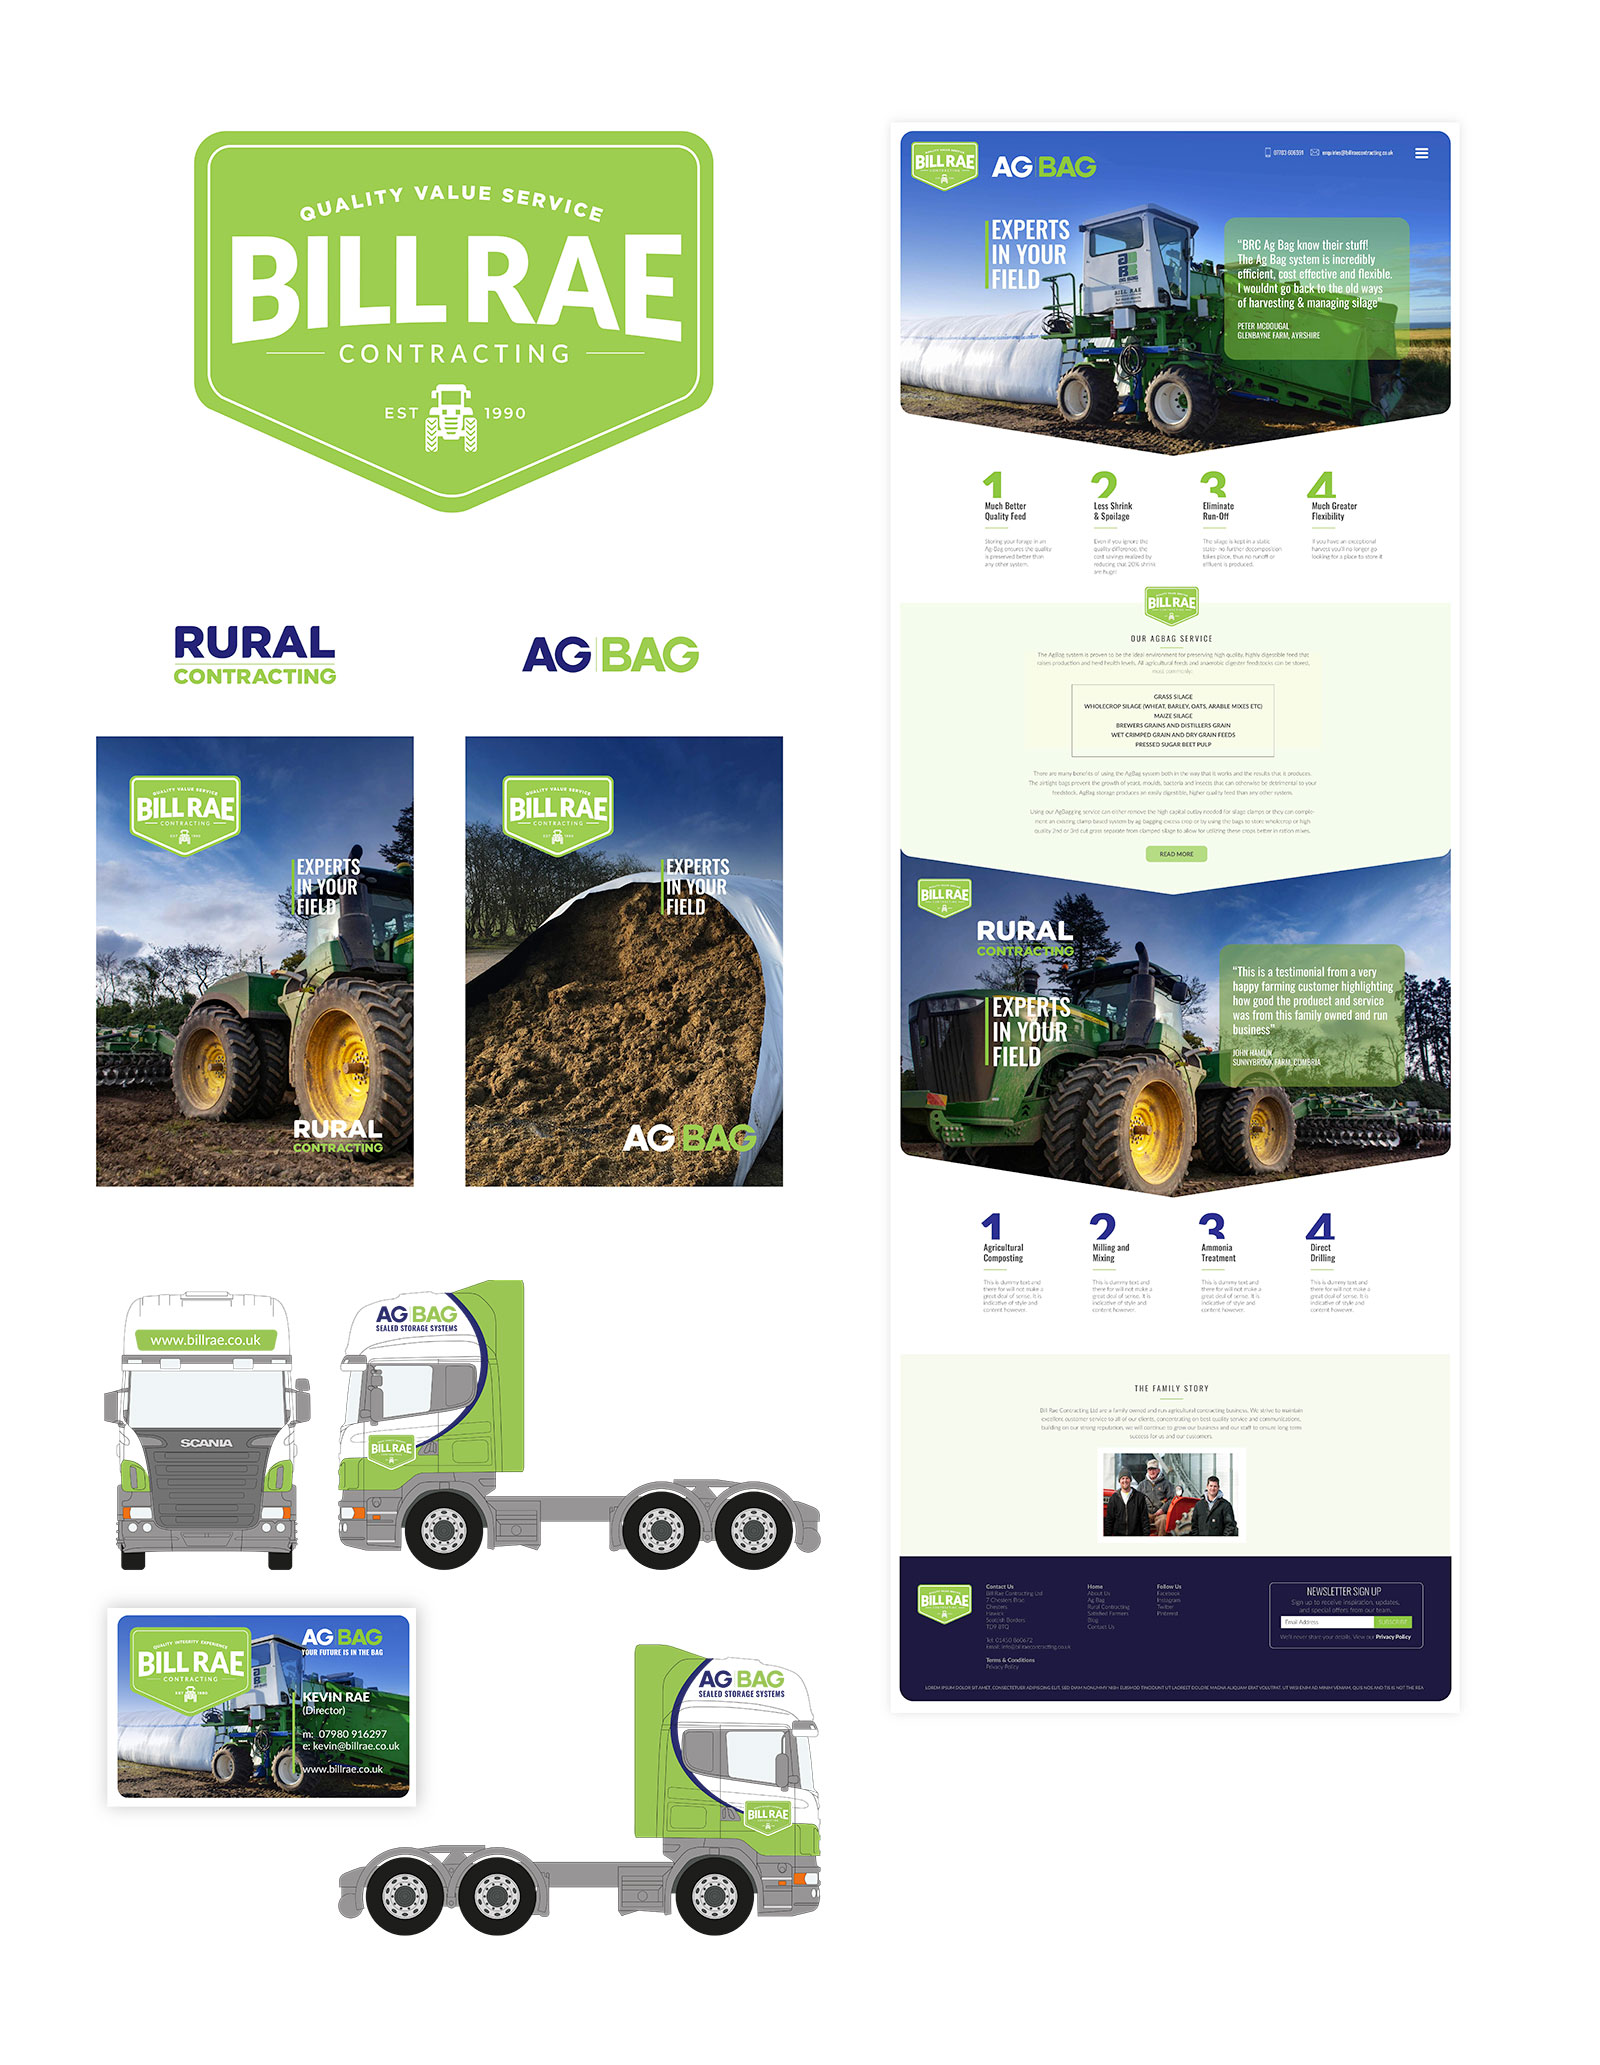 John Hamlin Brand & Web Design Bill Rae Contracting